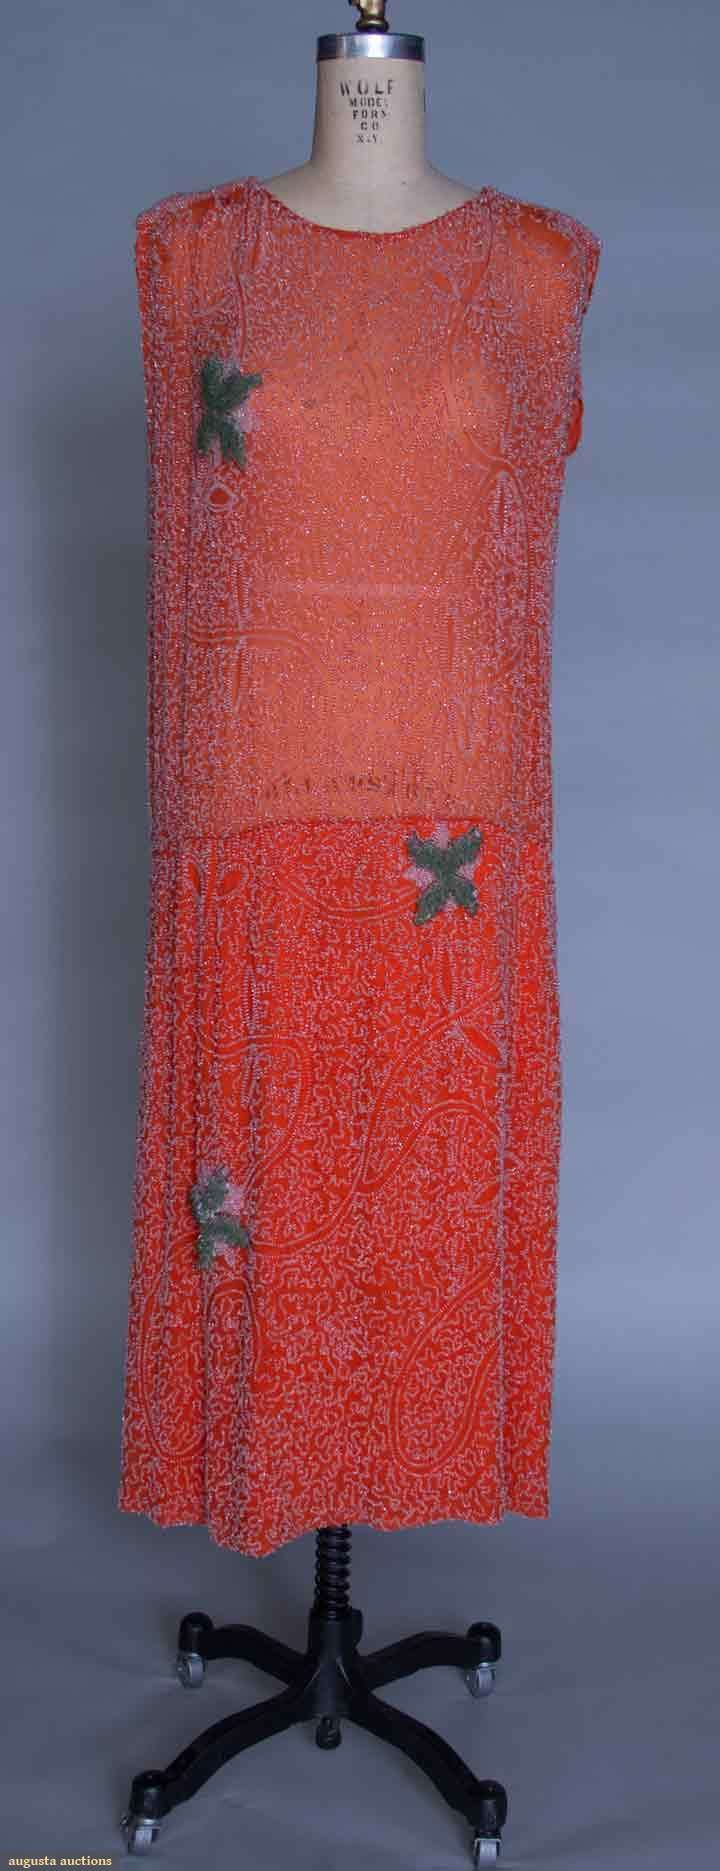 Augusta Auctions, March 30, 2011 - St. Pauls, Lot 368: Crystal Beaded Orange Party Dress, Mid 1920s